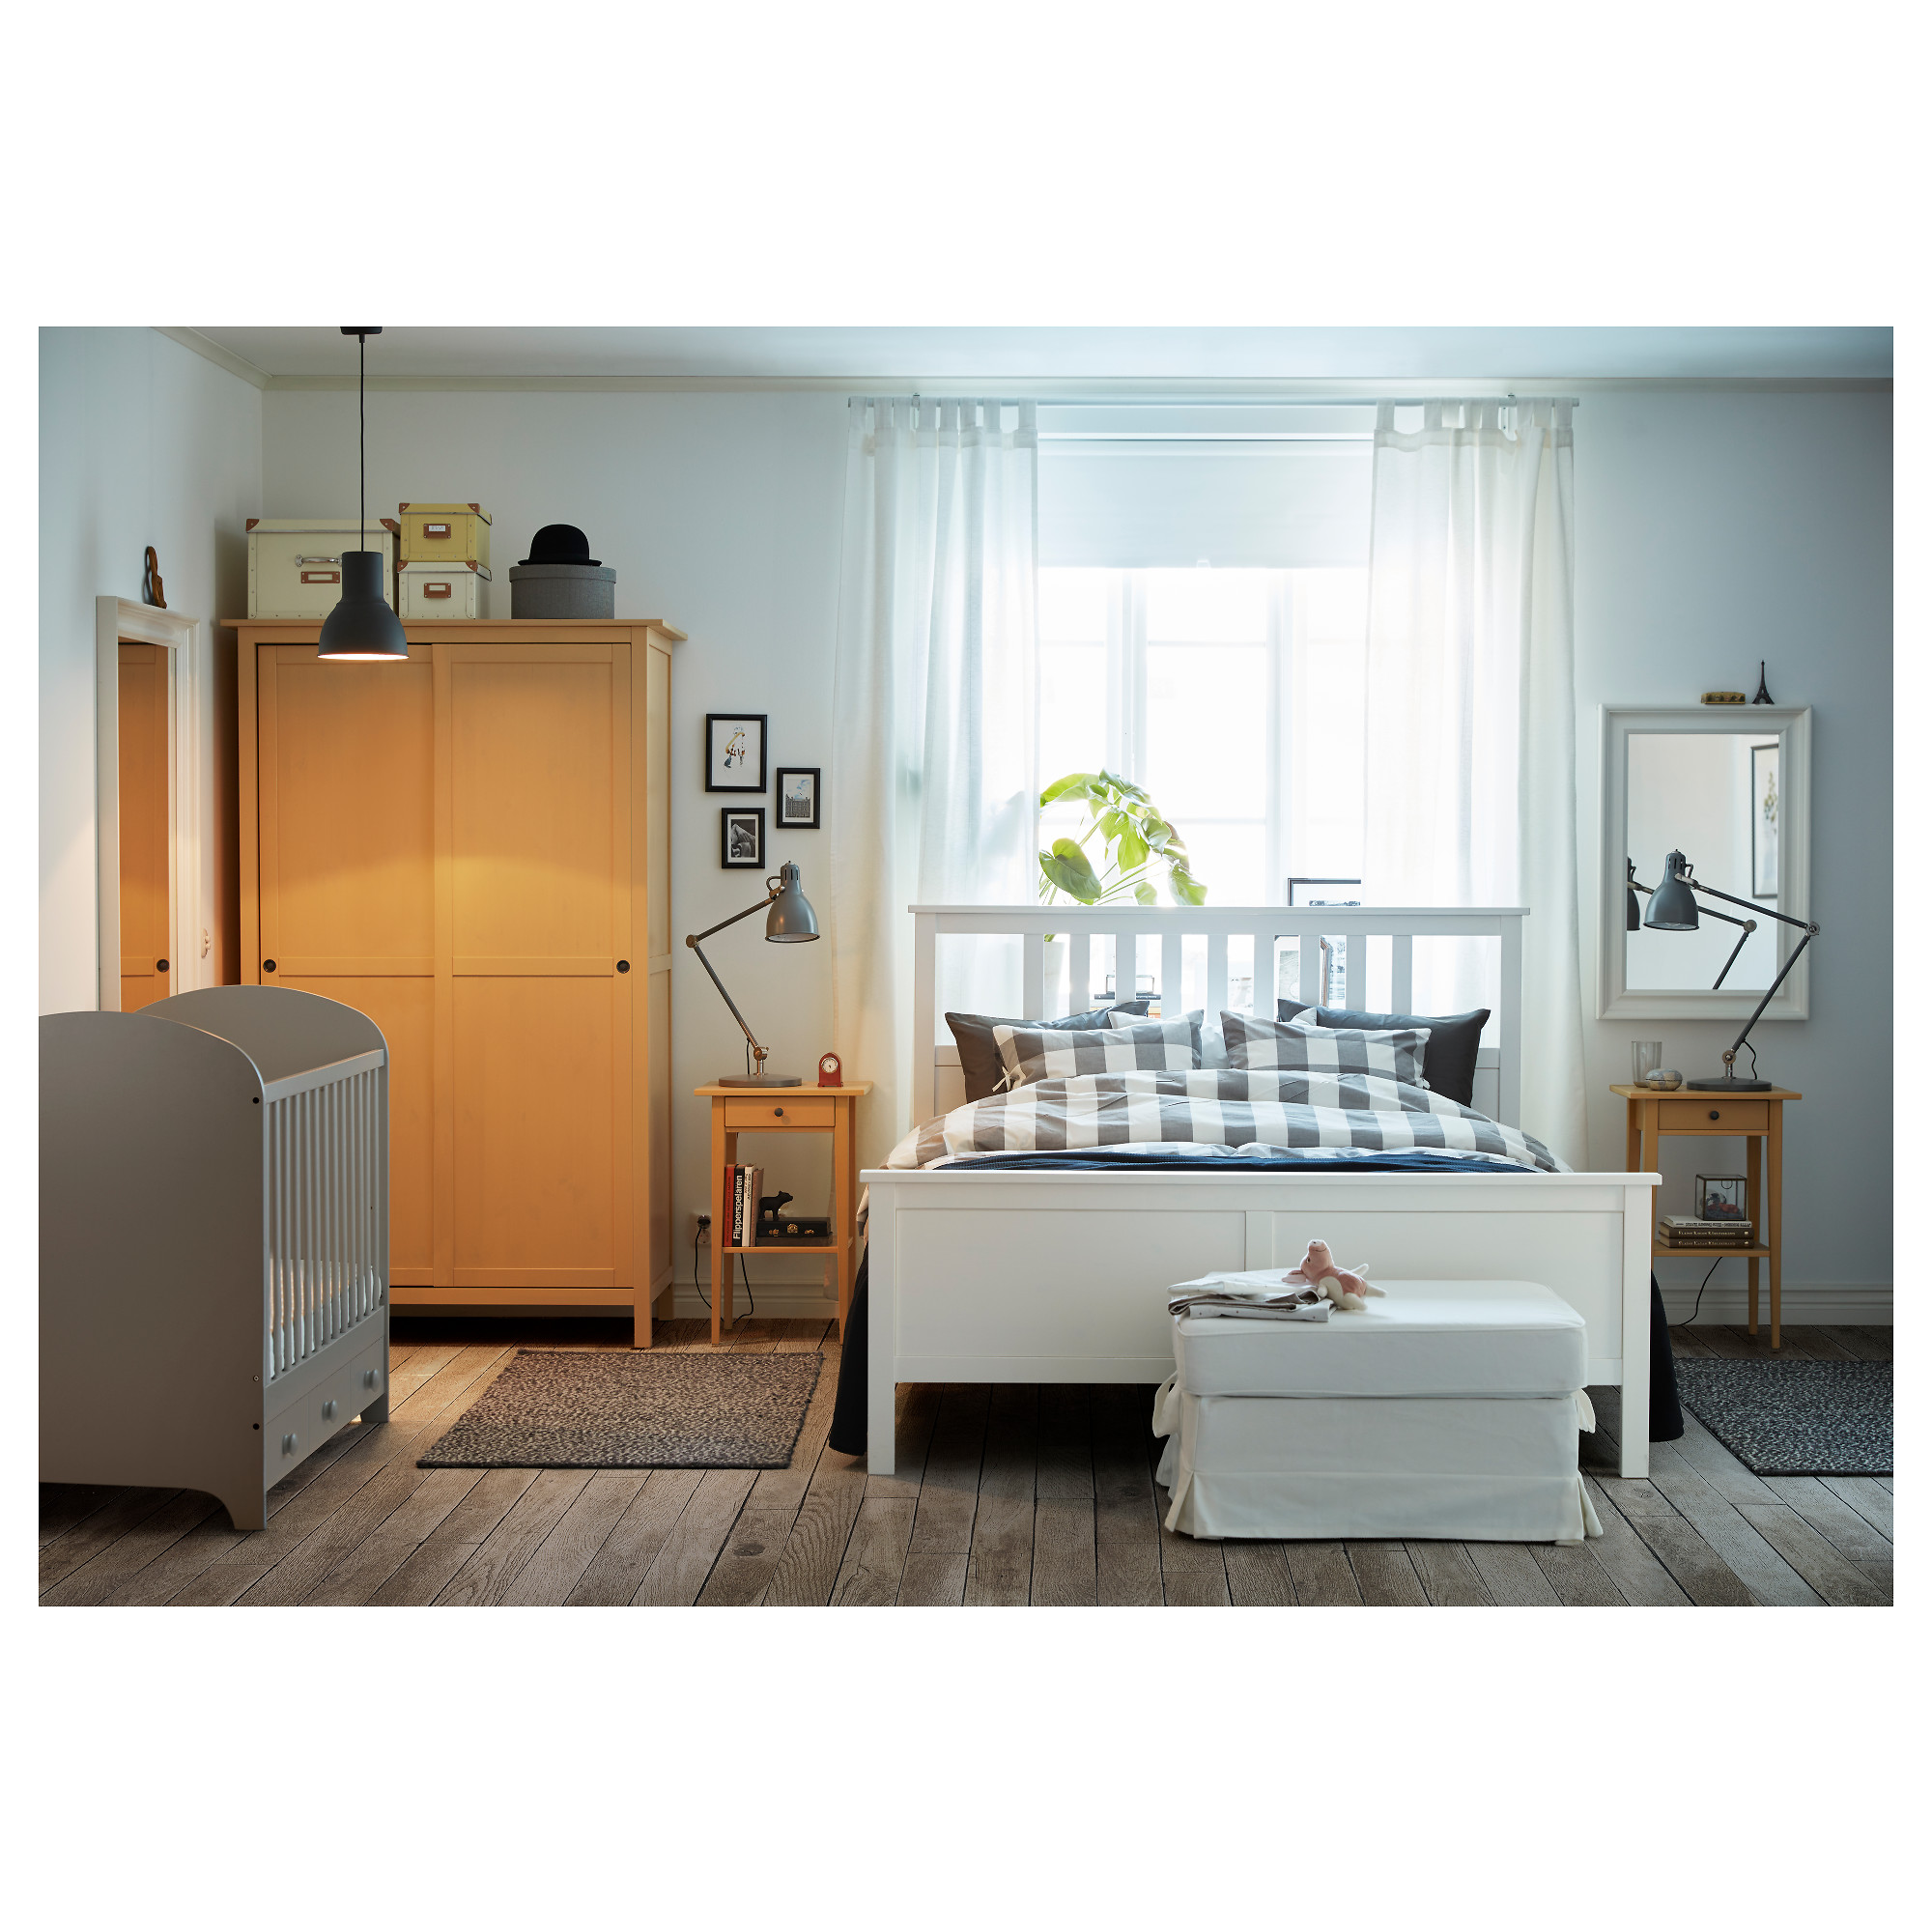 Delicieux HEMNES Bed Frame   Queen, Luröy, White Stain   IKEA